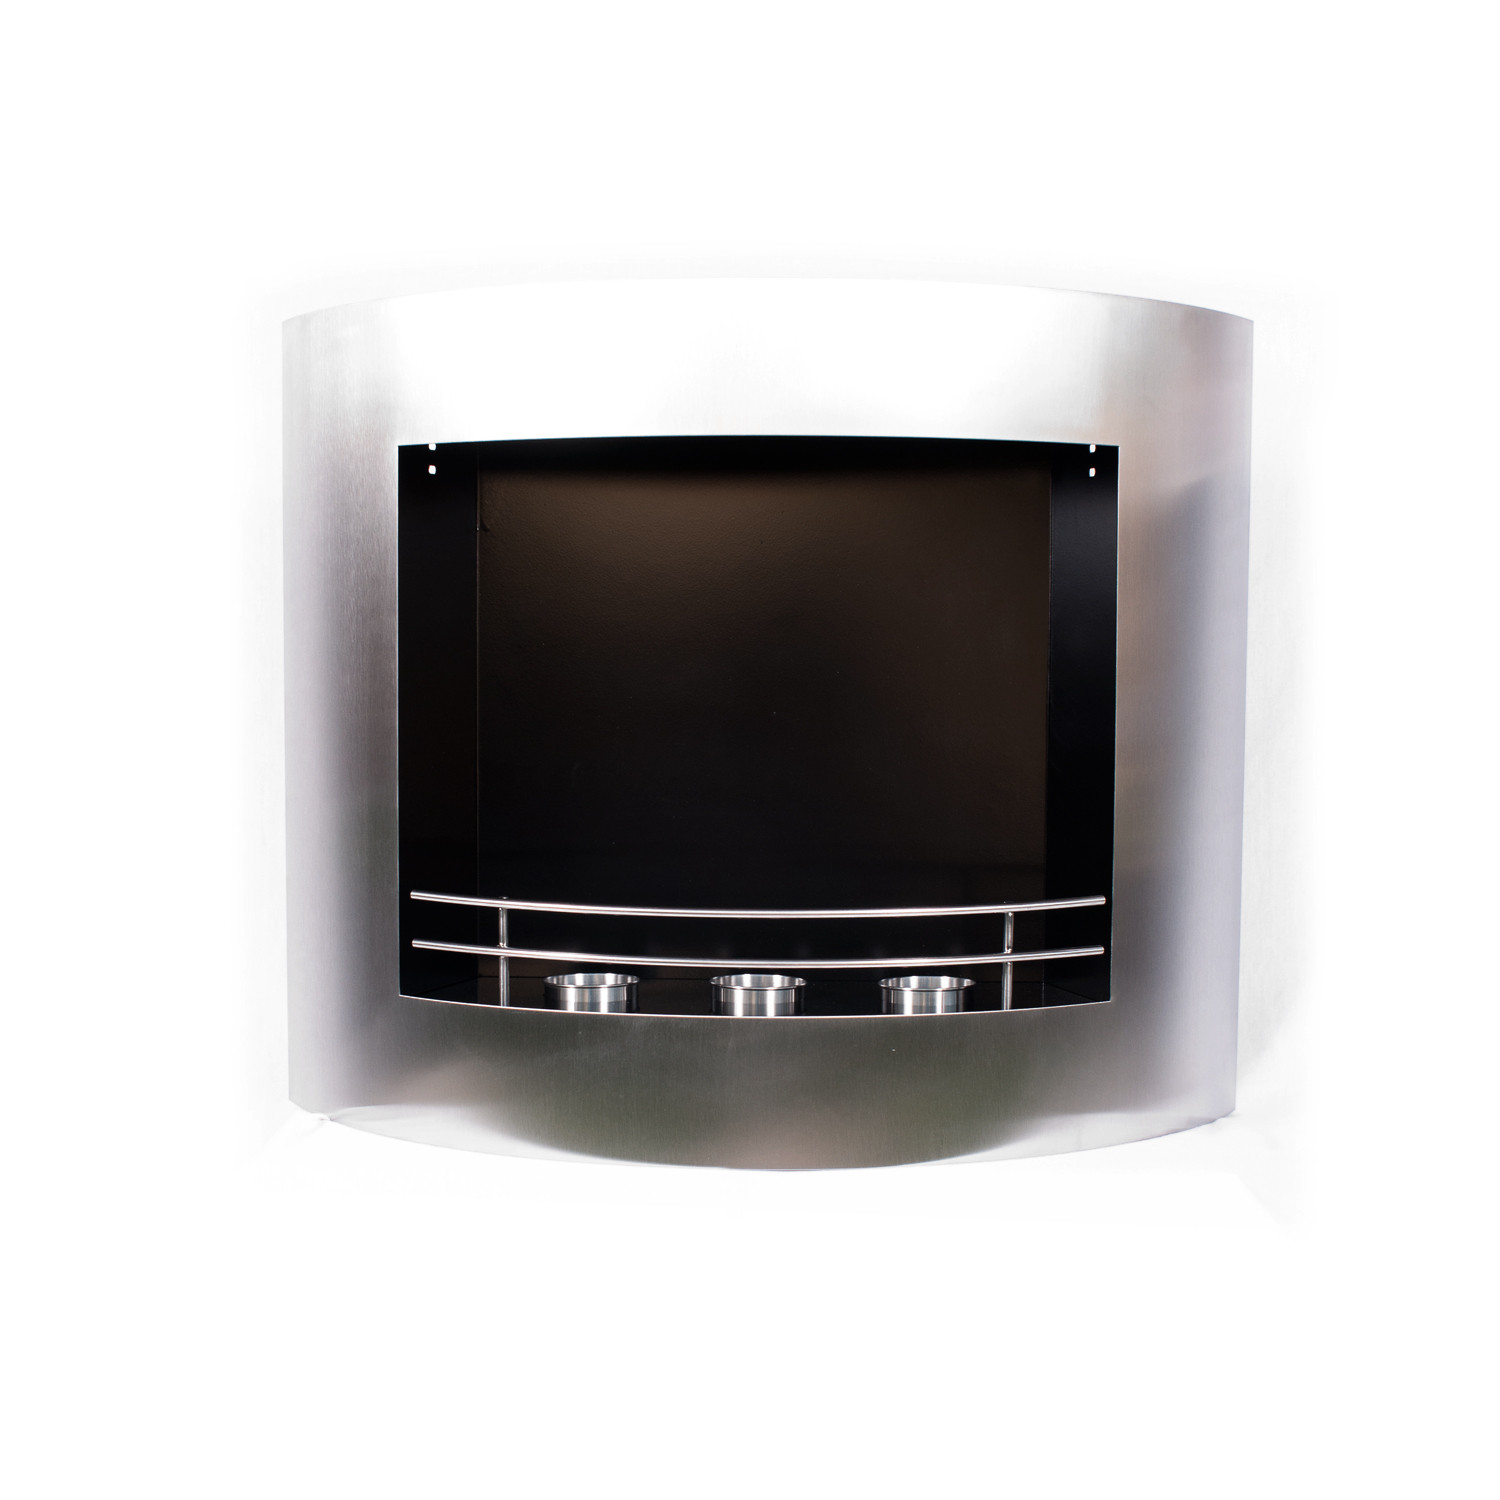 Stainless Steel Fireplace Wall Mounted Curved Fireplace Stainless Steel Utopia